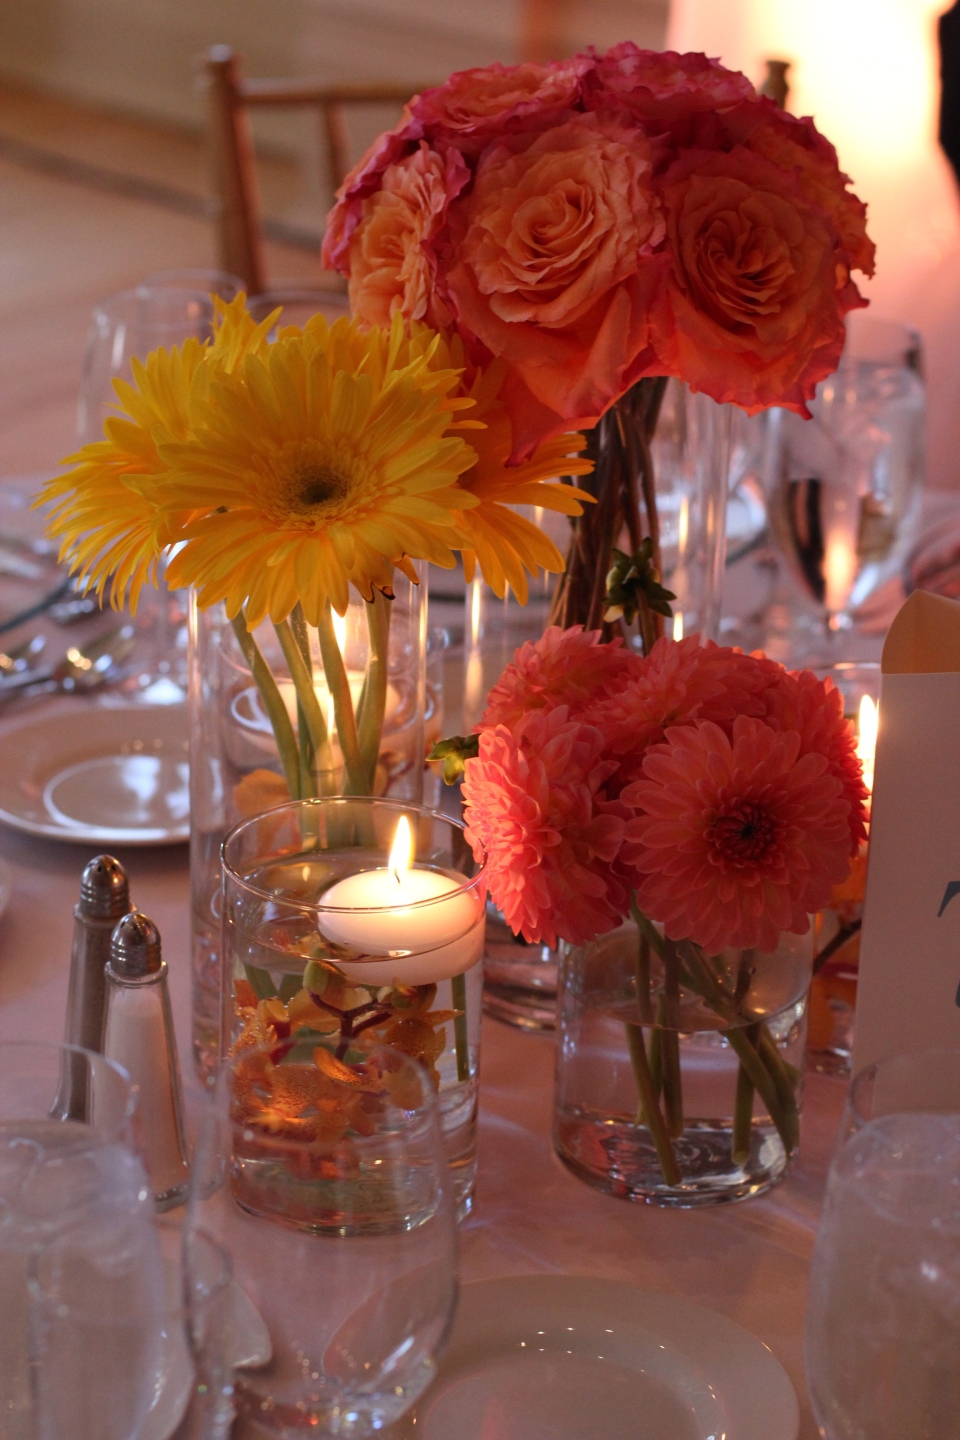 Grouping of roses, gerberas and dahlias with submerged orchid floating candles.